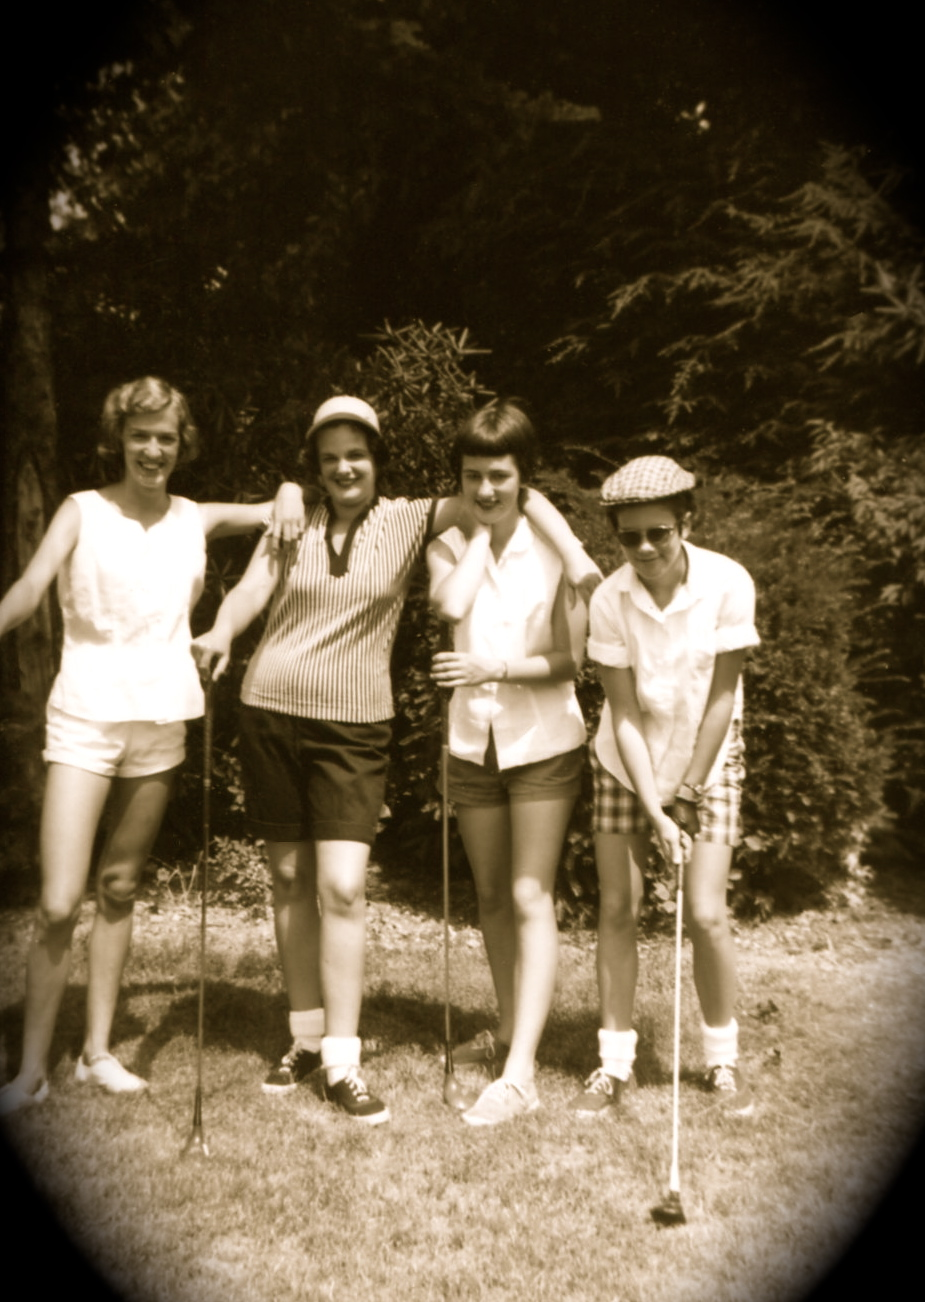 Golfing away the Summer of 1958...L2R: Ussery cousin & 3 Ussery sisters Dot, Marianna, & Nancy, Blacksburg, Virginia.